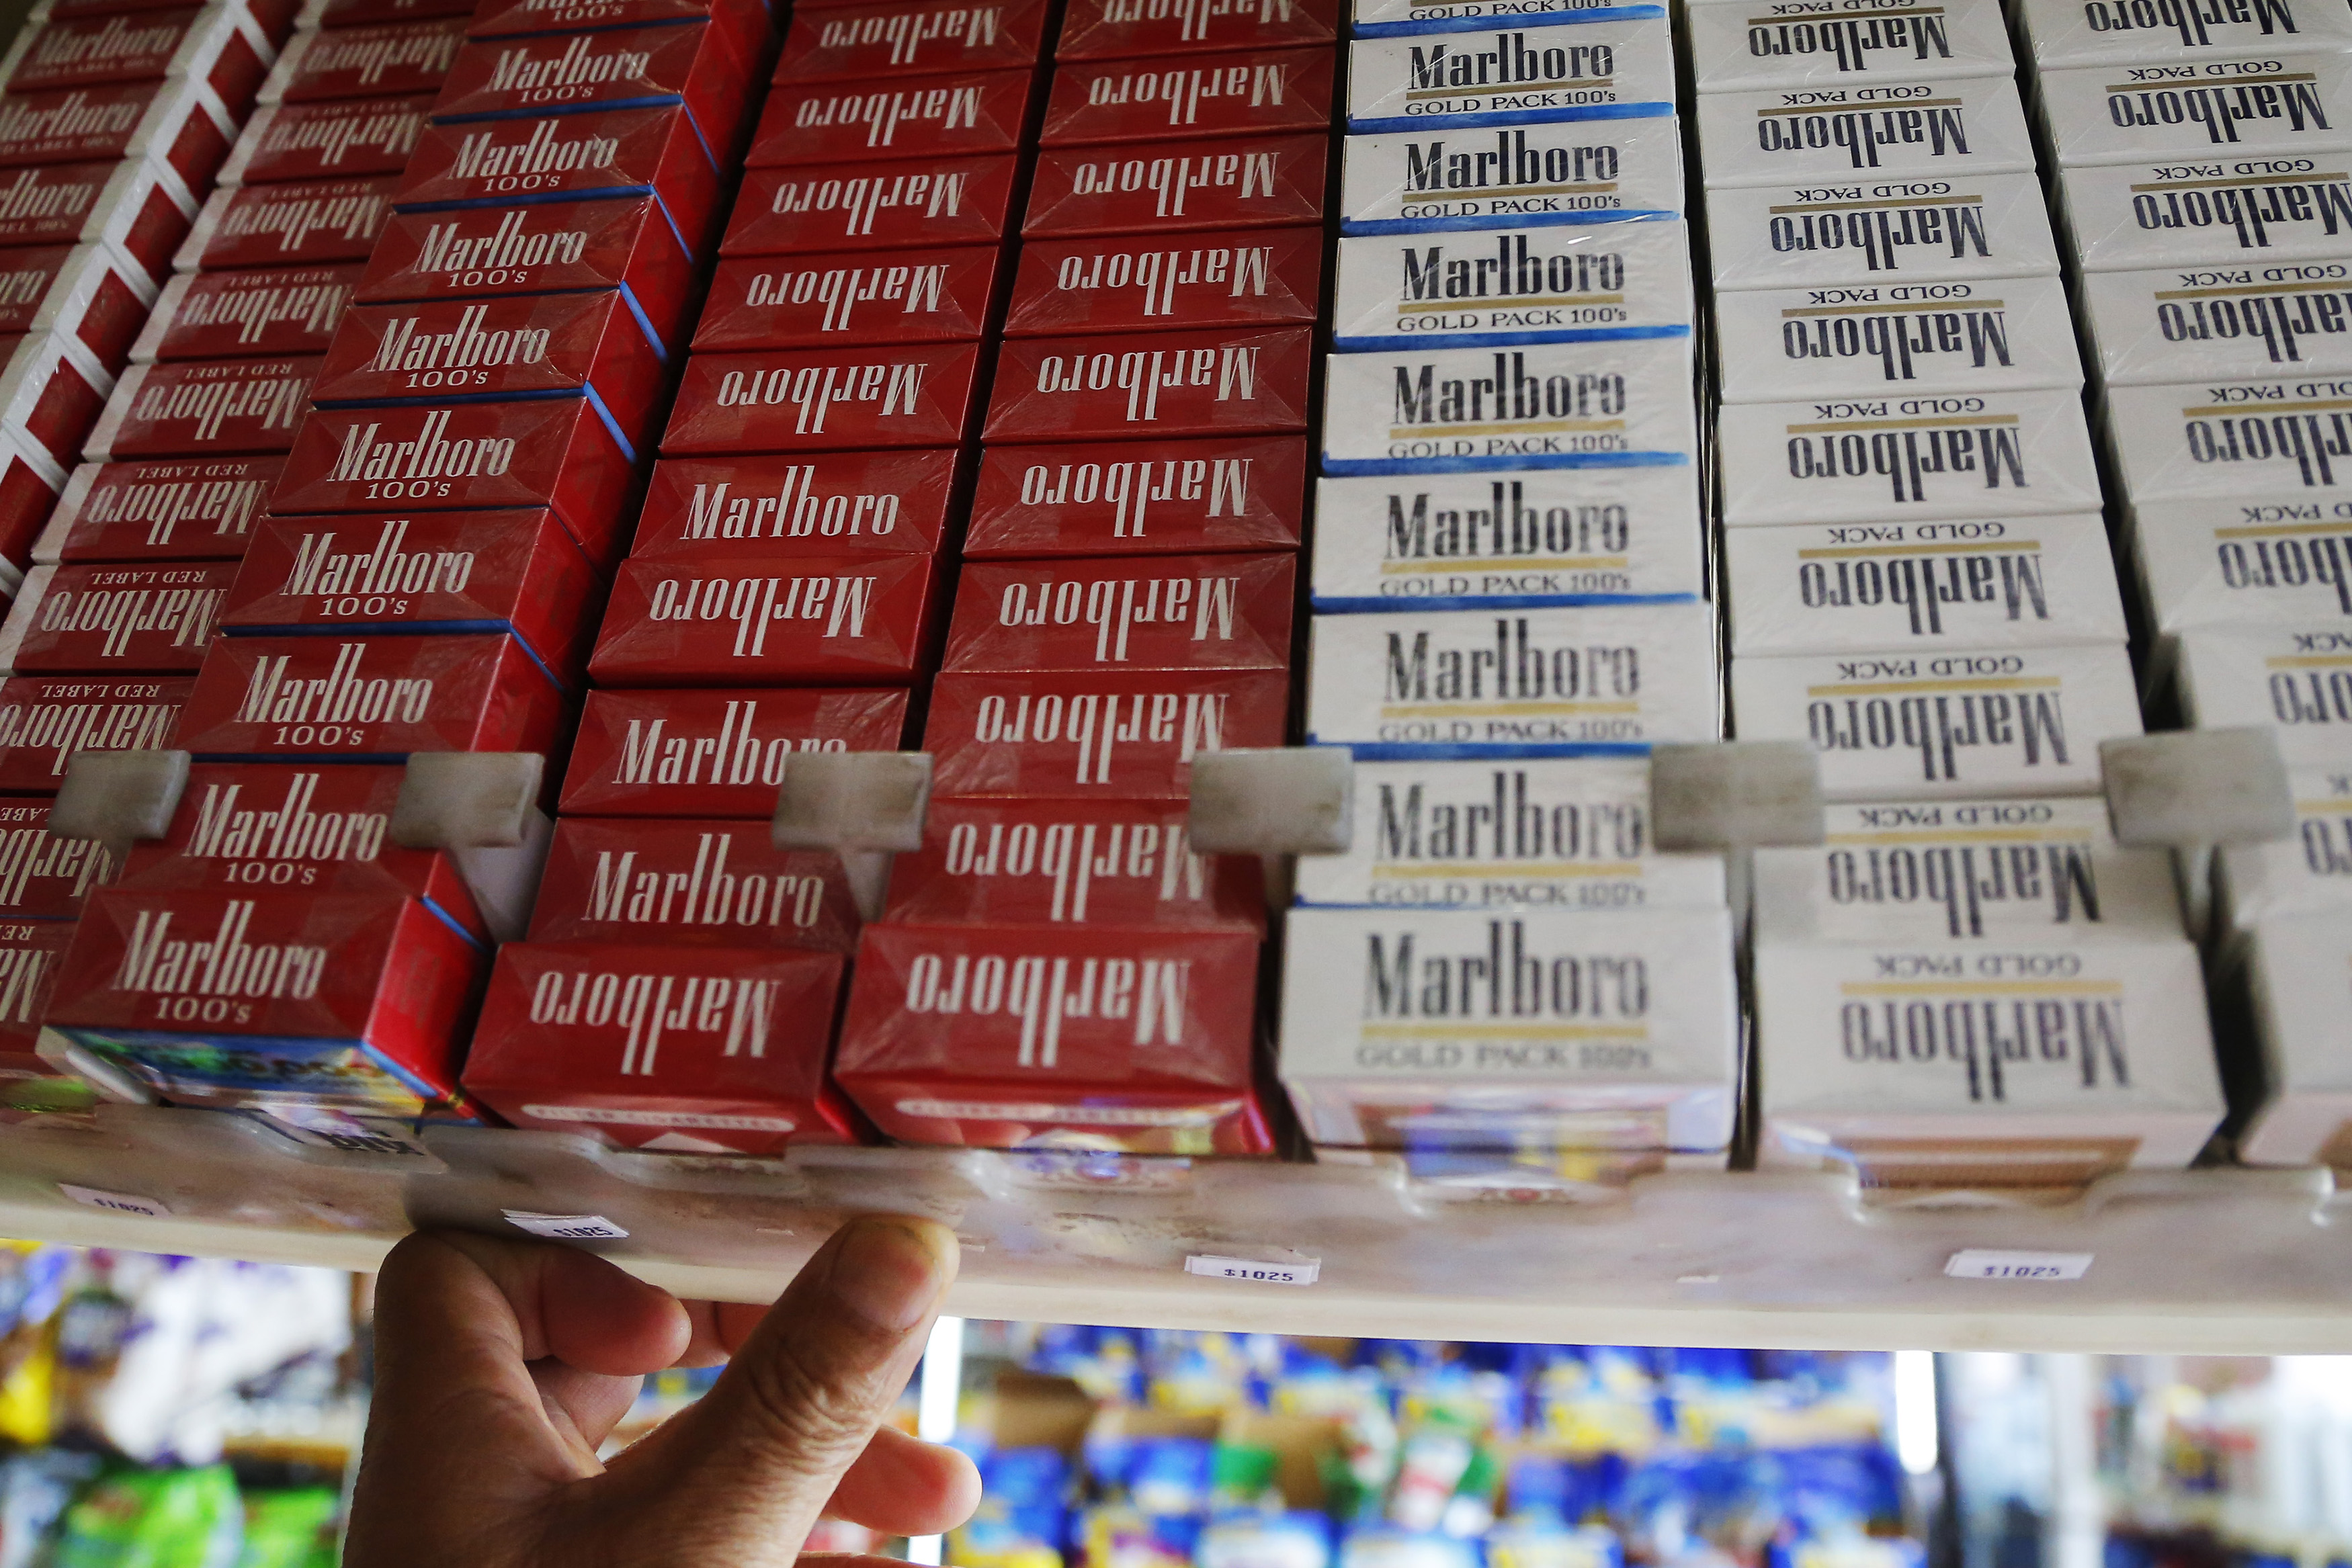 All the different cigarettes Marlboro